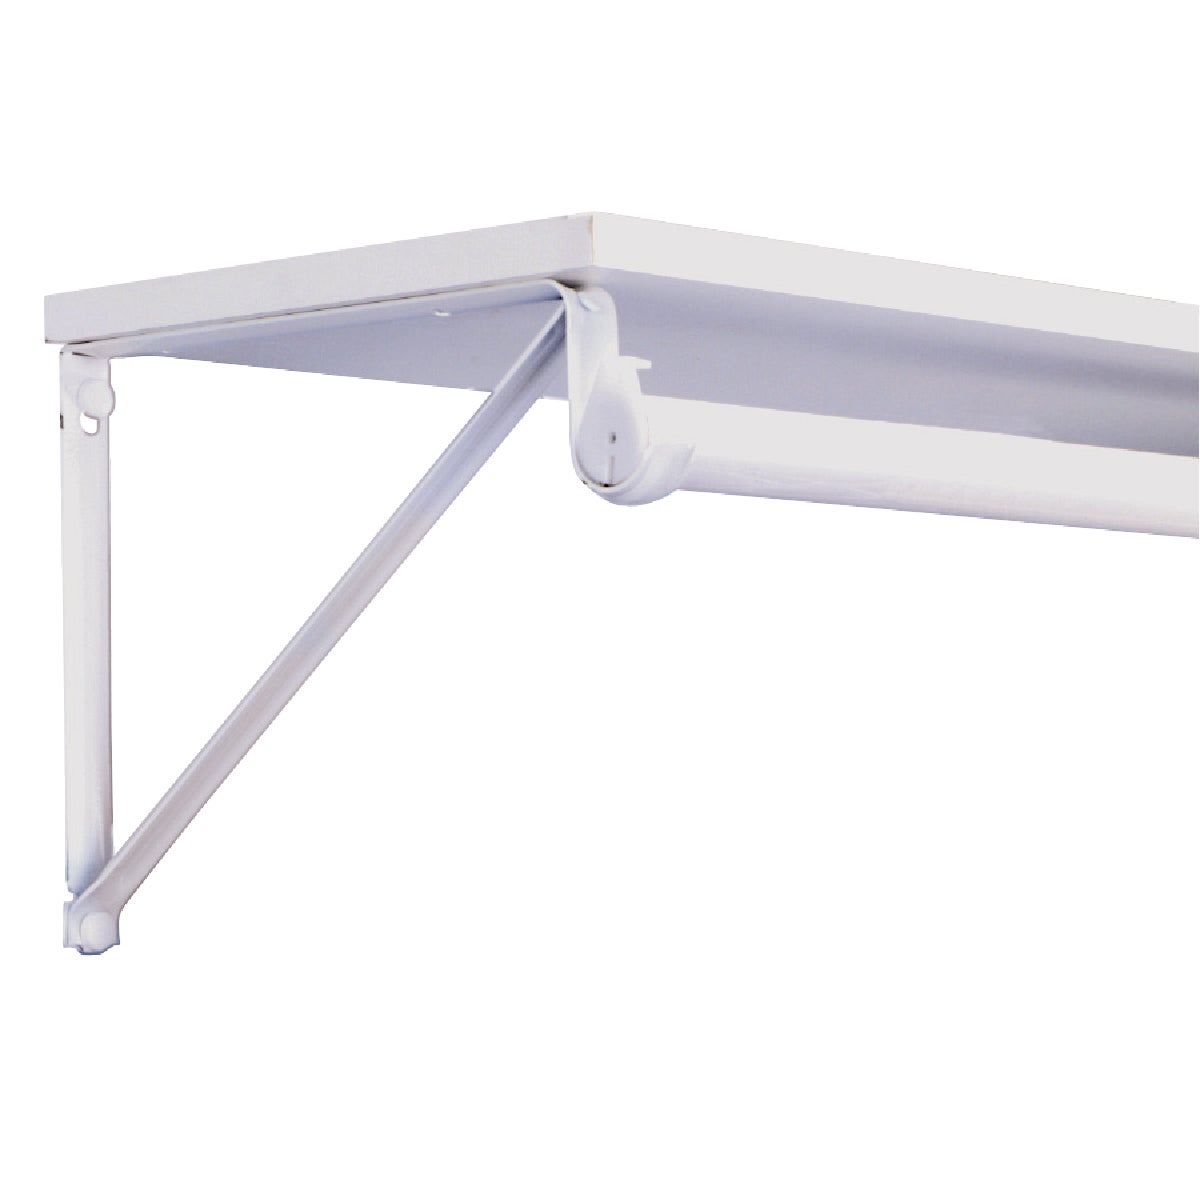 WHITE SHELF/ROD BRACKET